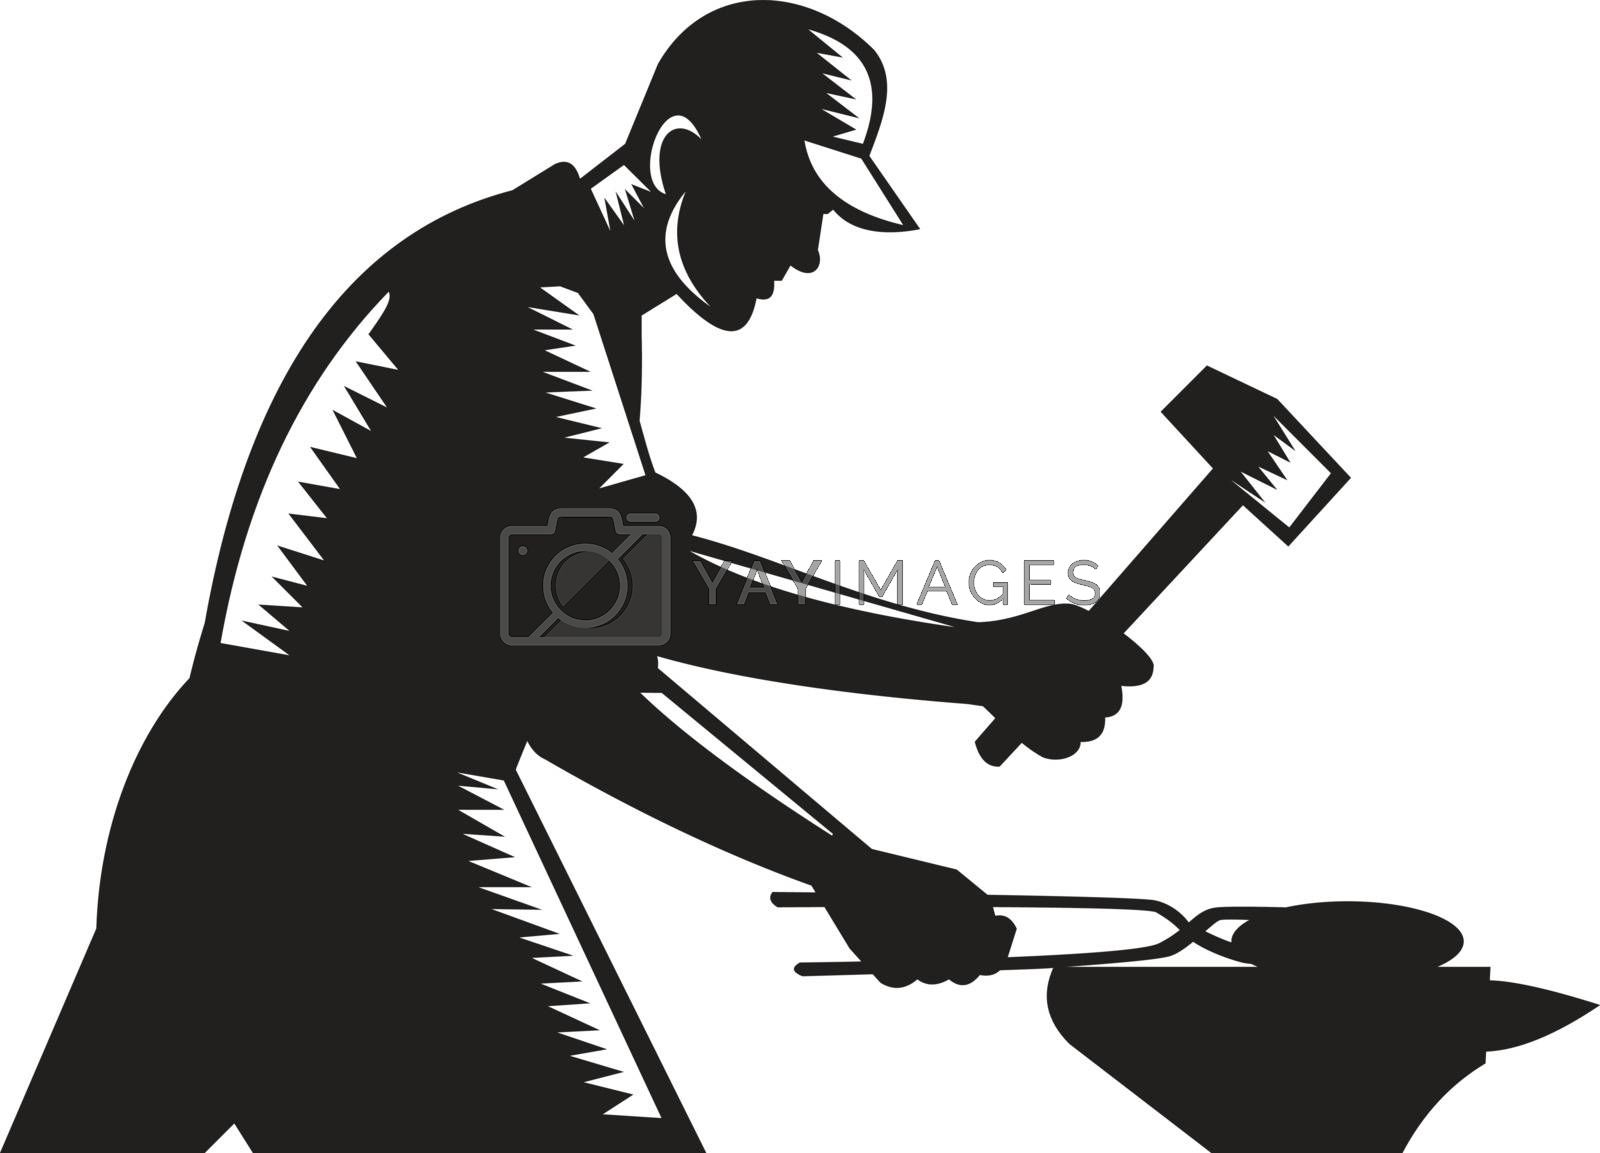 Black and white illustration of a blacksmith worker forging iron viewed from the side set on isolated white background done in retro woodcut style.